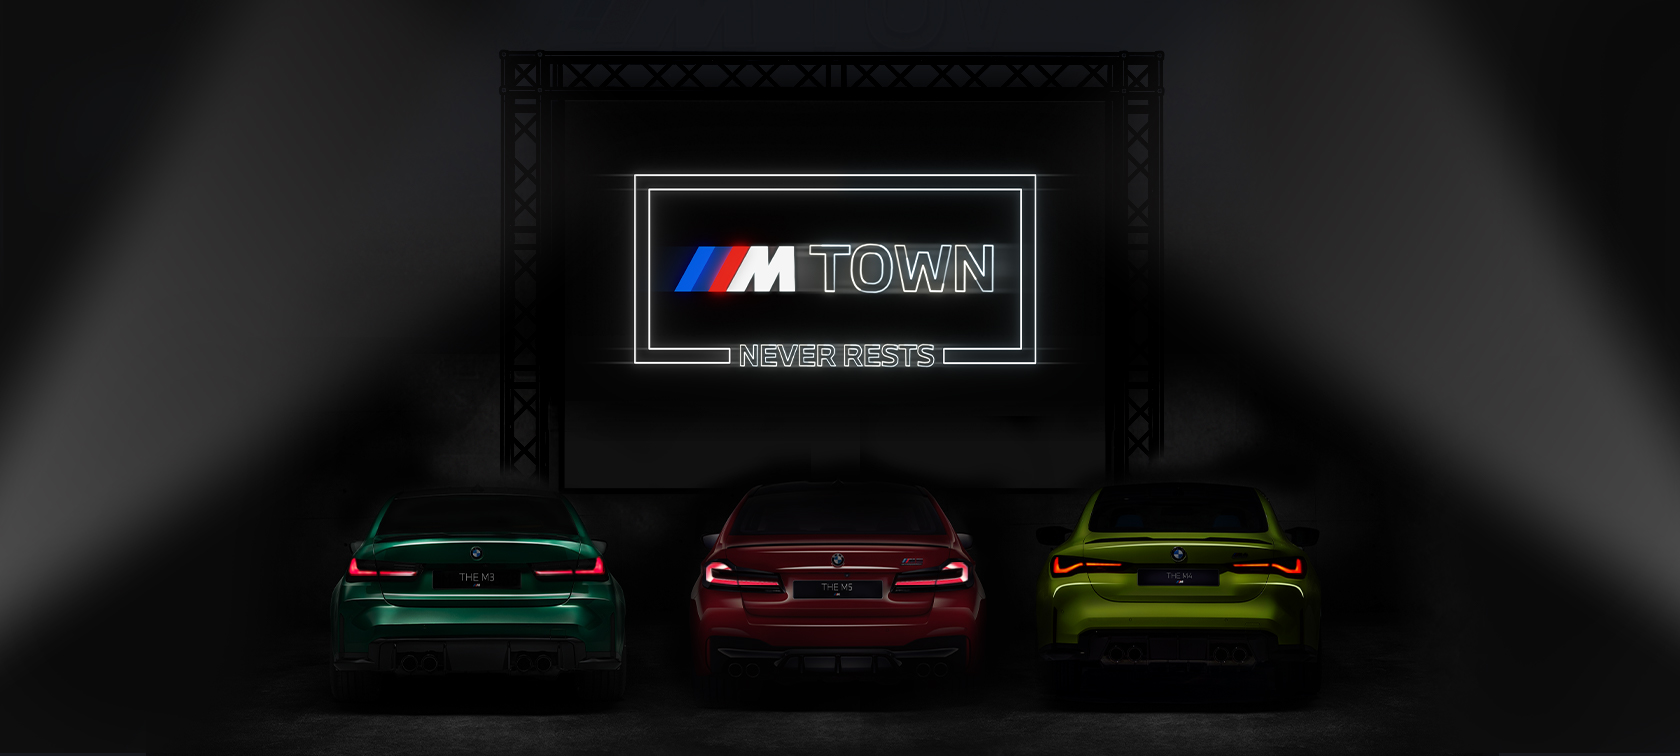 M TOWN